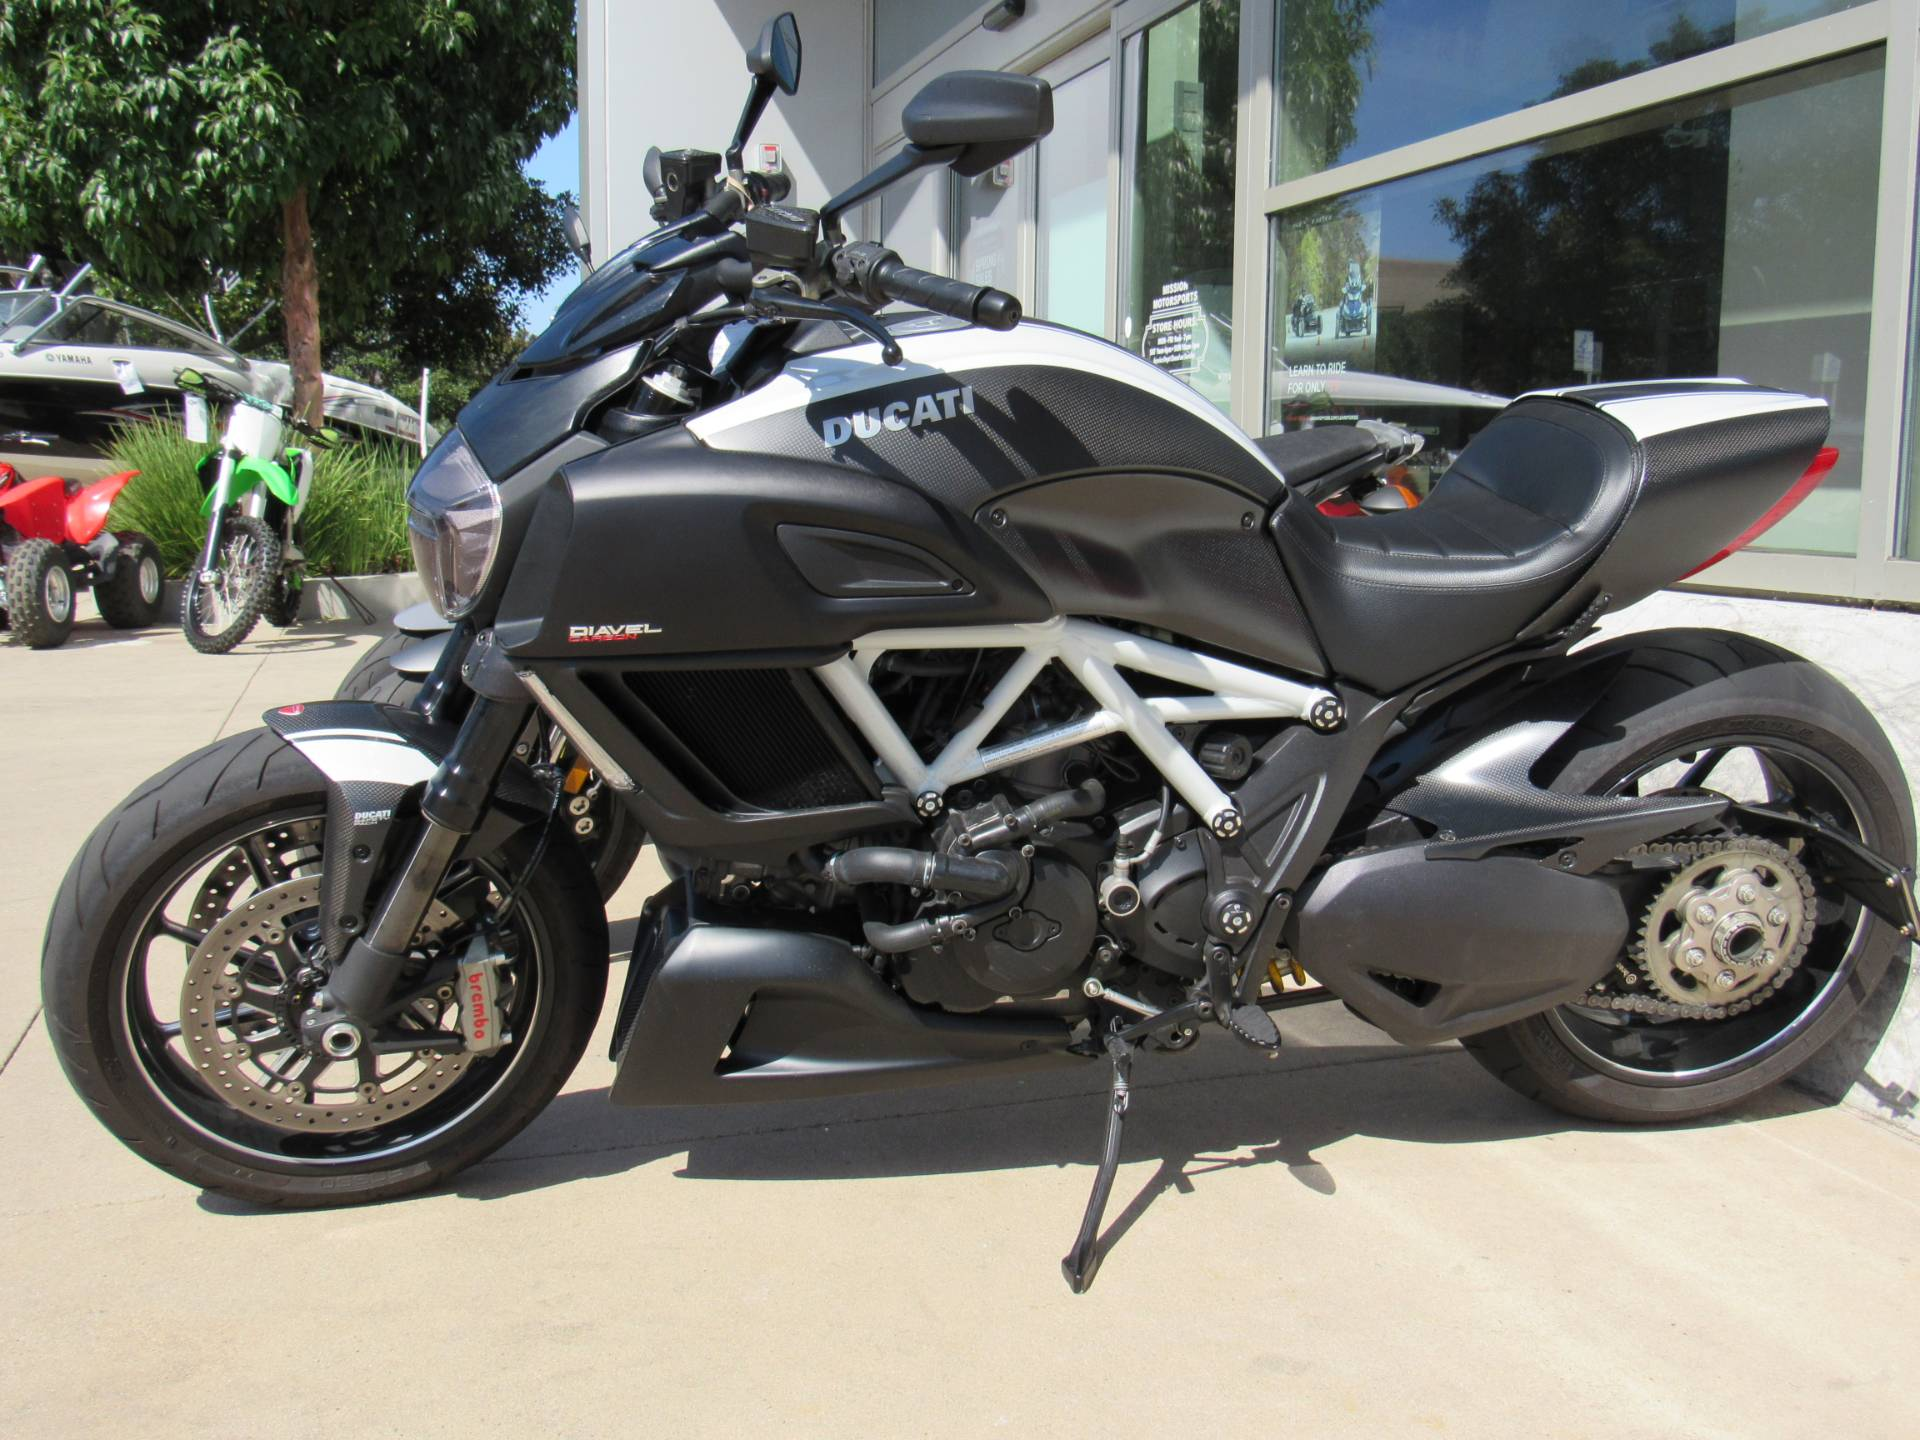 Used 2015 Ducati Diavel Carbon Motorcycles in Irvine, CA | Stock ...